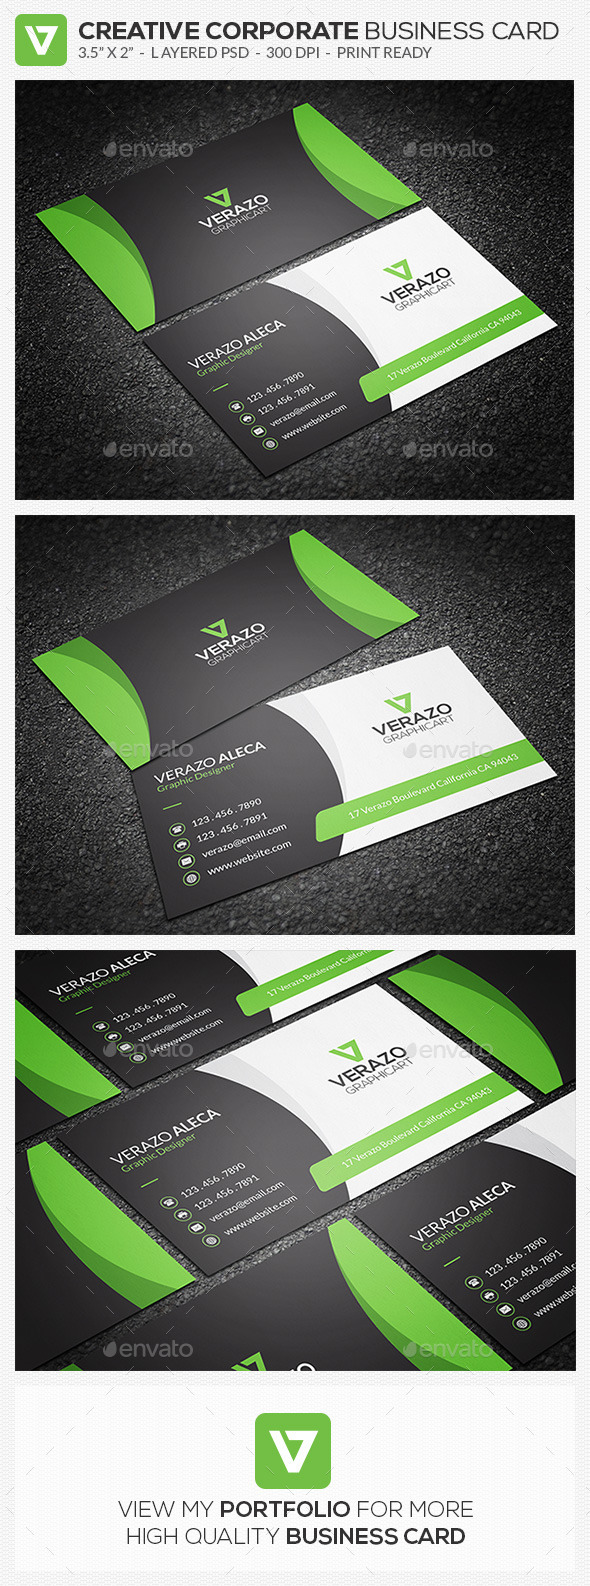 GraphicRiver Creative Corporate Business Card 75 10321673